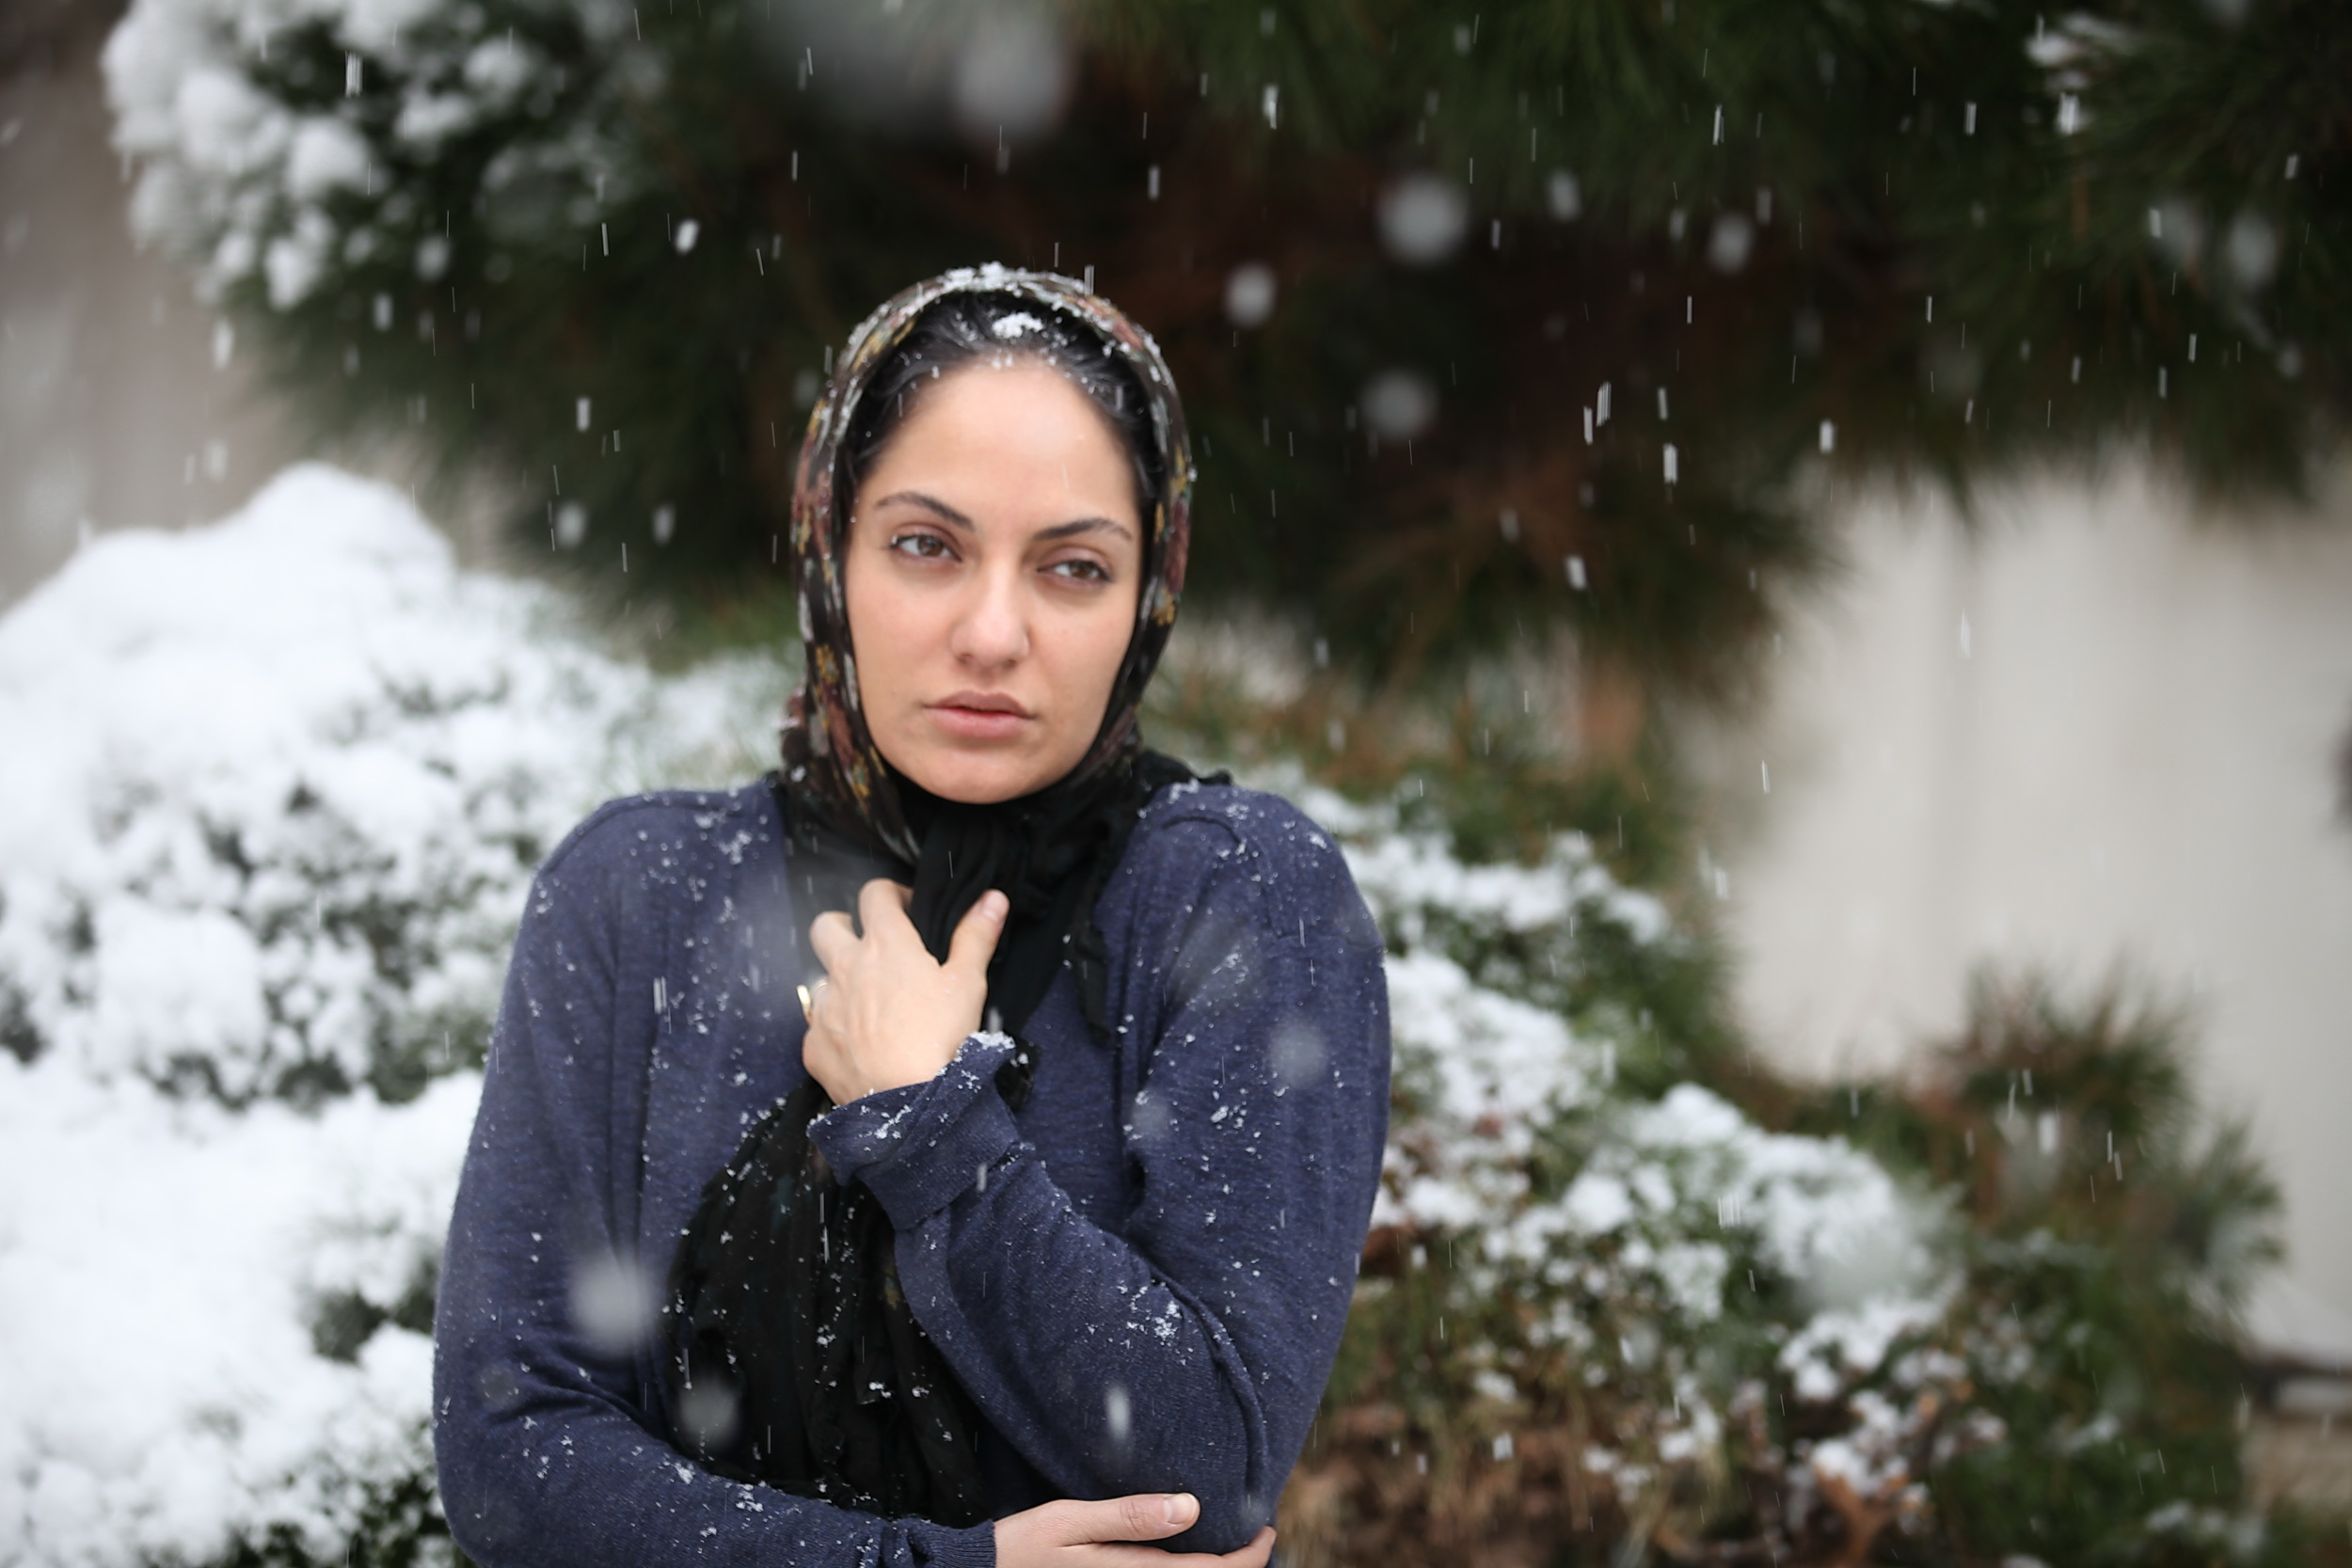 IMAGE: ACTRESS MAHNAZ AFSHAR PICTURED IN SNOW ON PINES, THE DIRECTORIAL DEBUT FROM IRANIAN WRITER AND ACTOR PAYMAN MAADI.